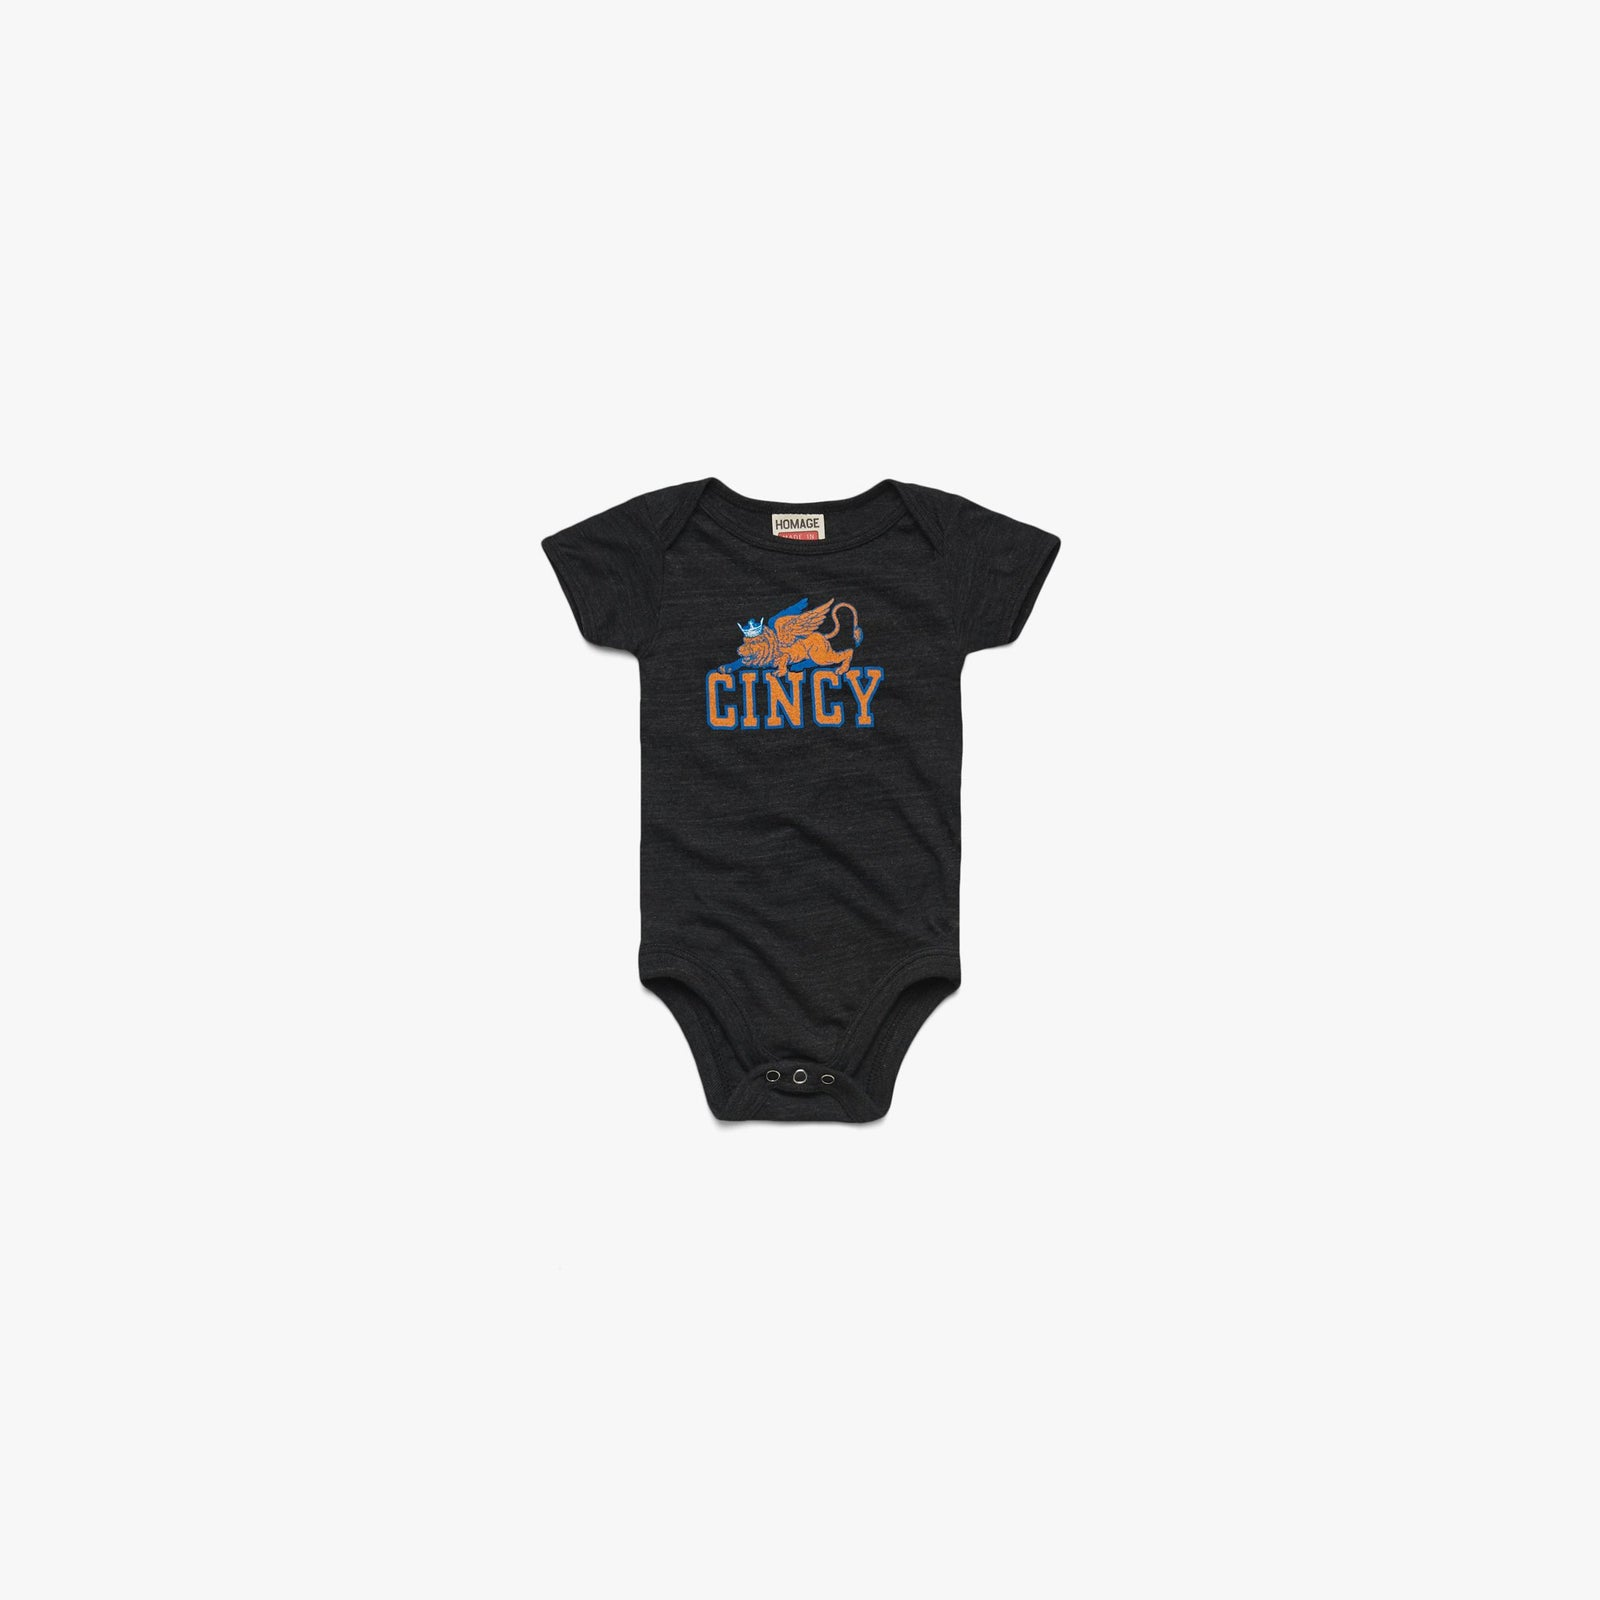 Cincy Lion And Crown Baby One Piece